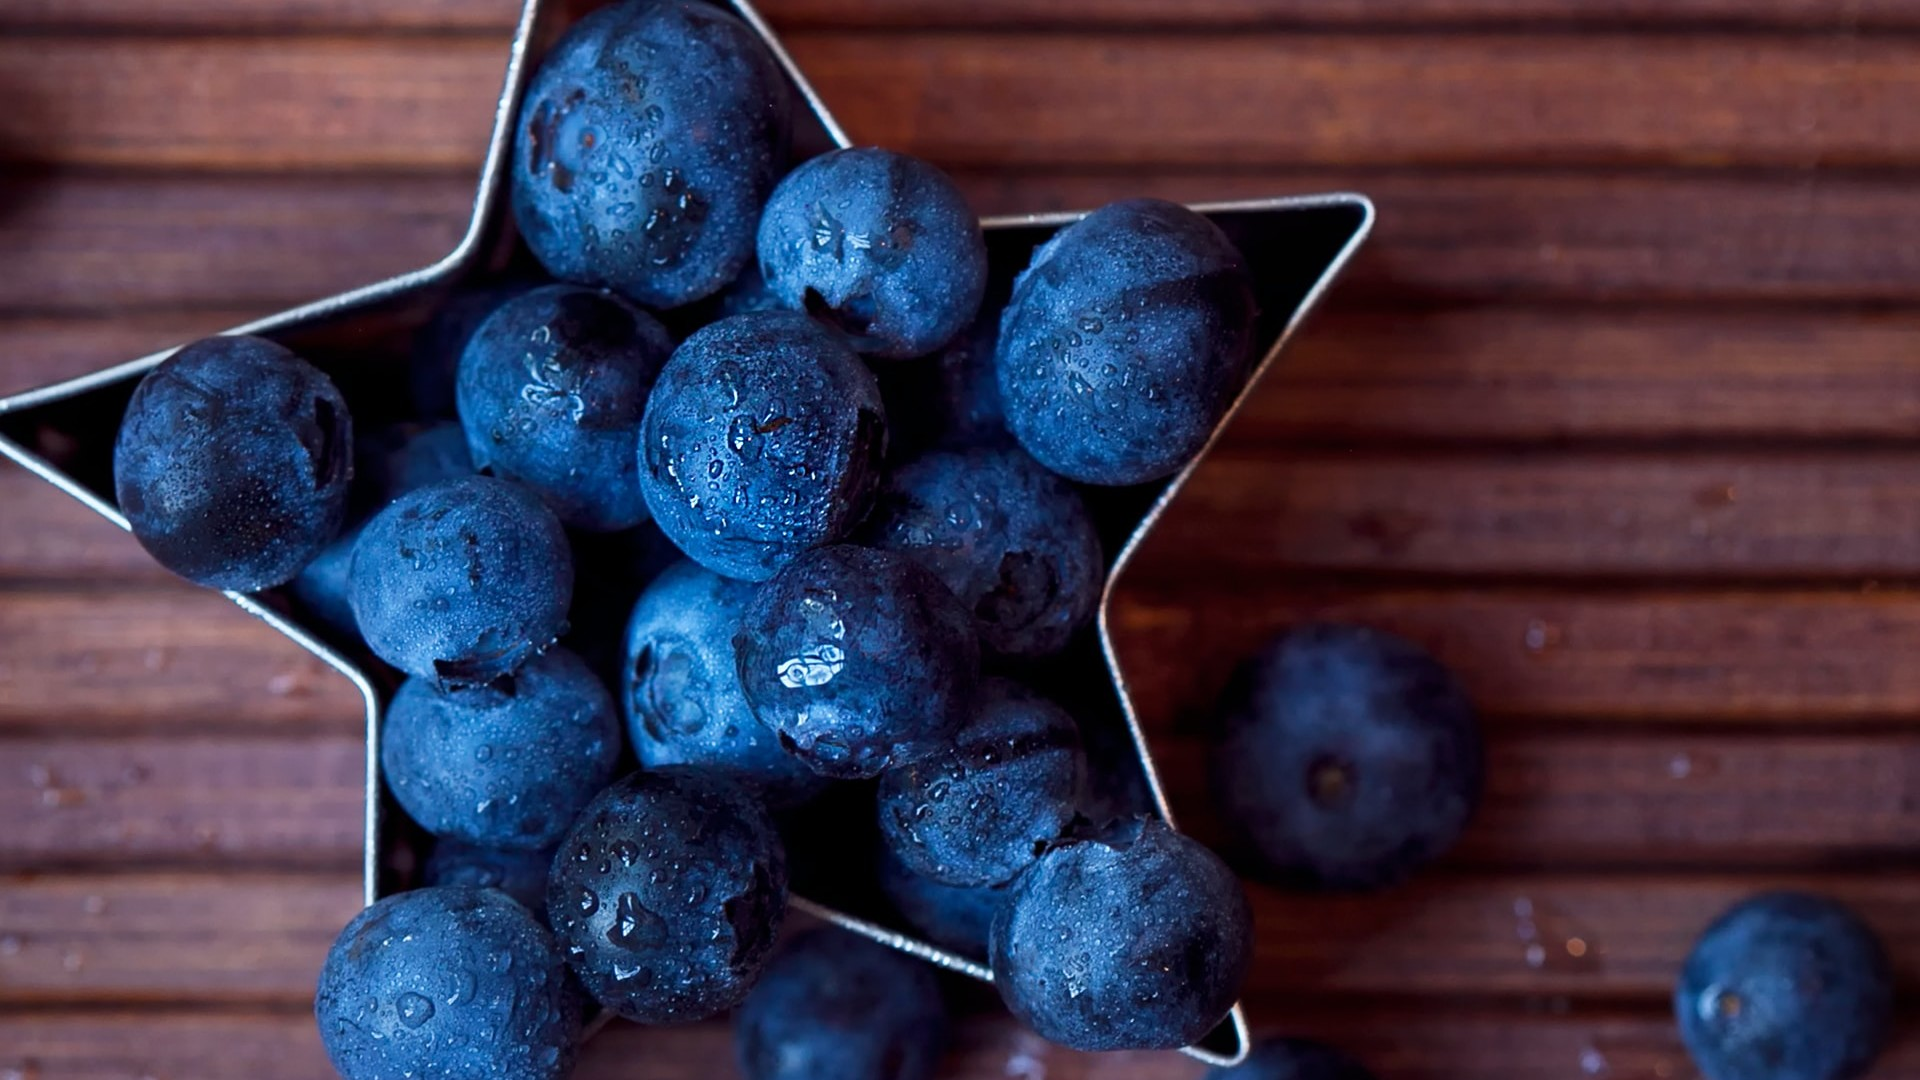 Blueberry Harvest Wraps Up